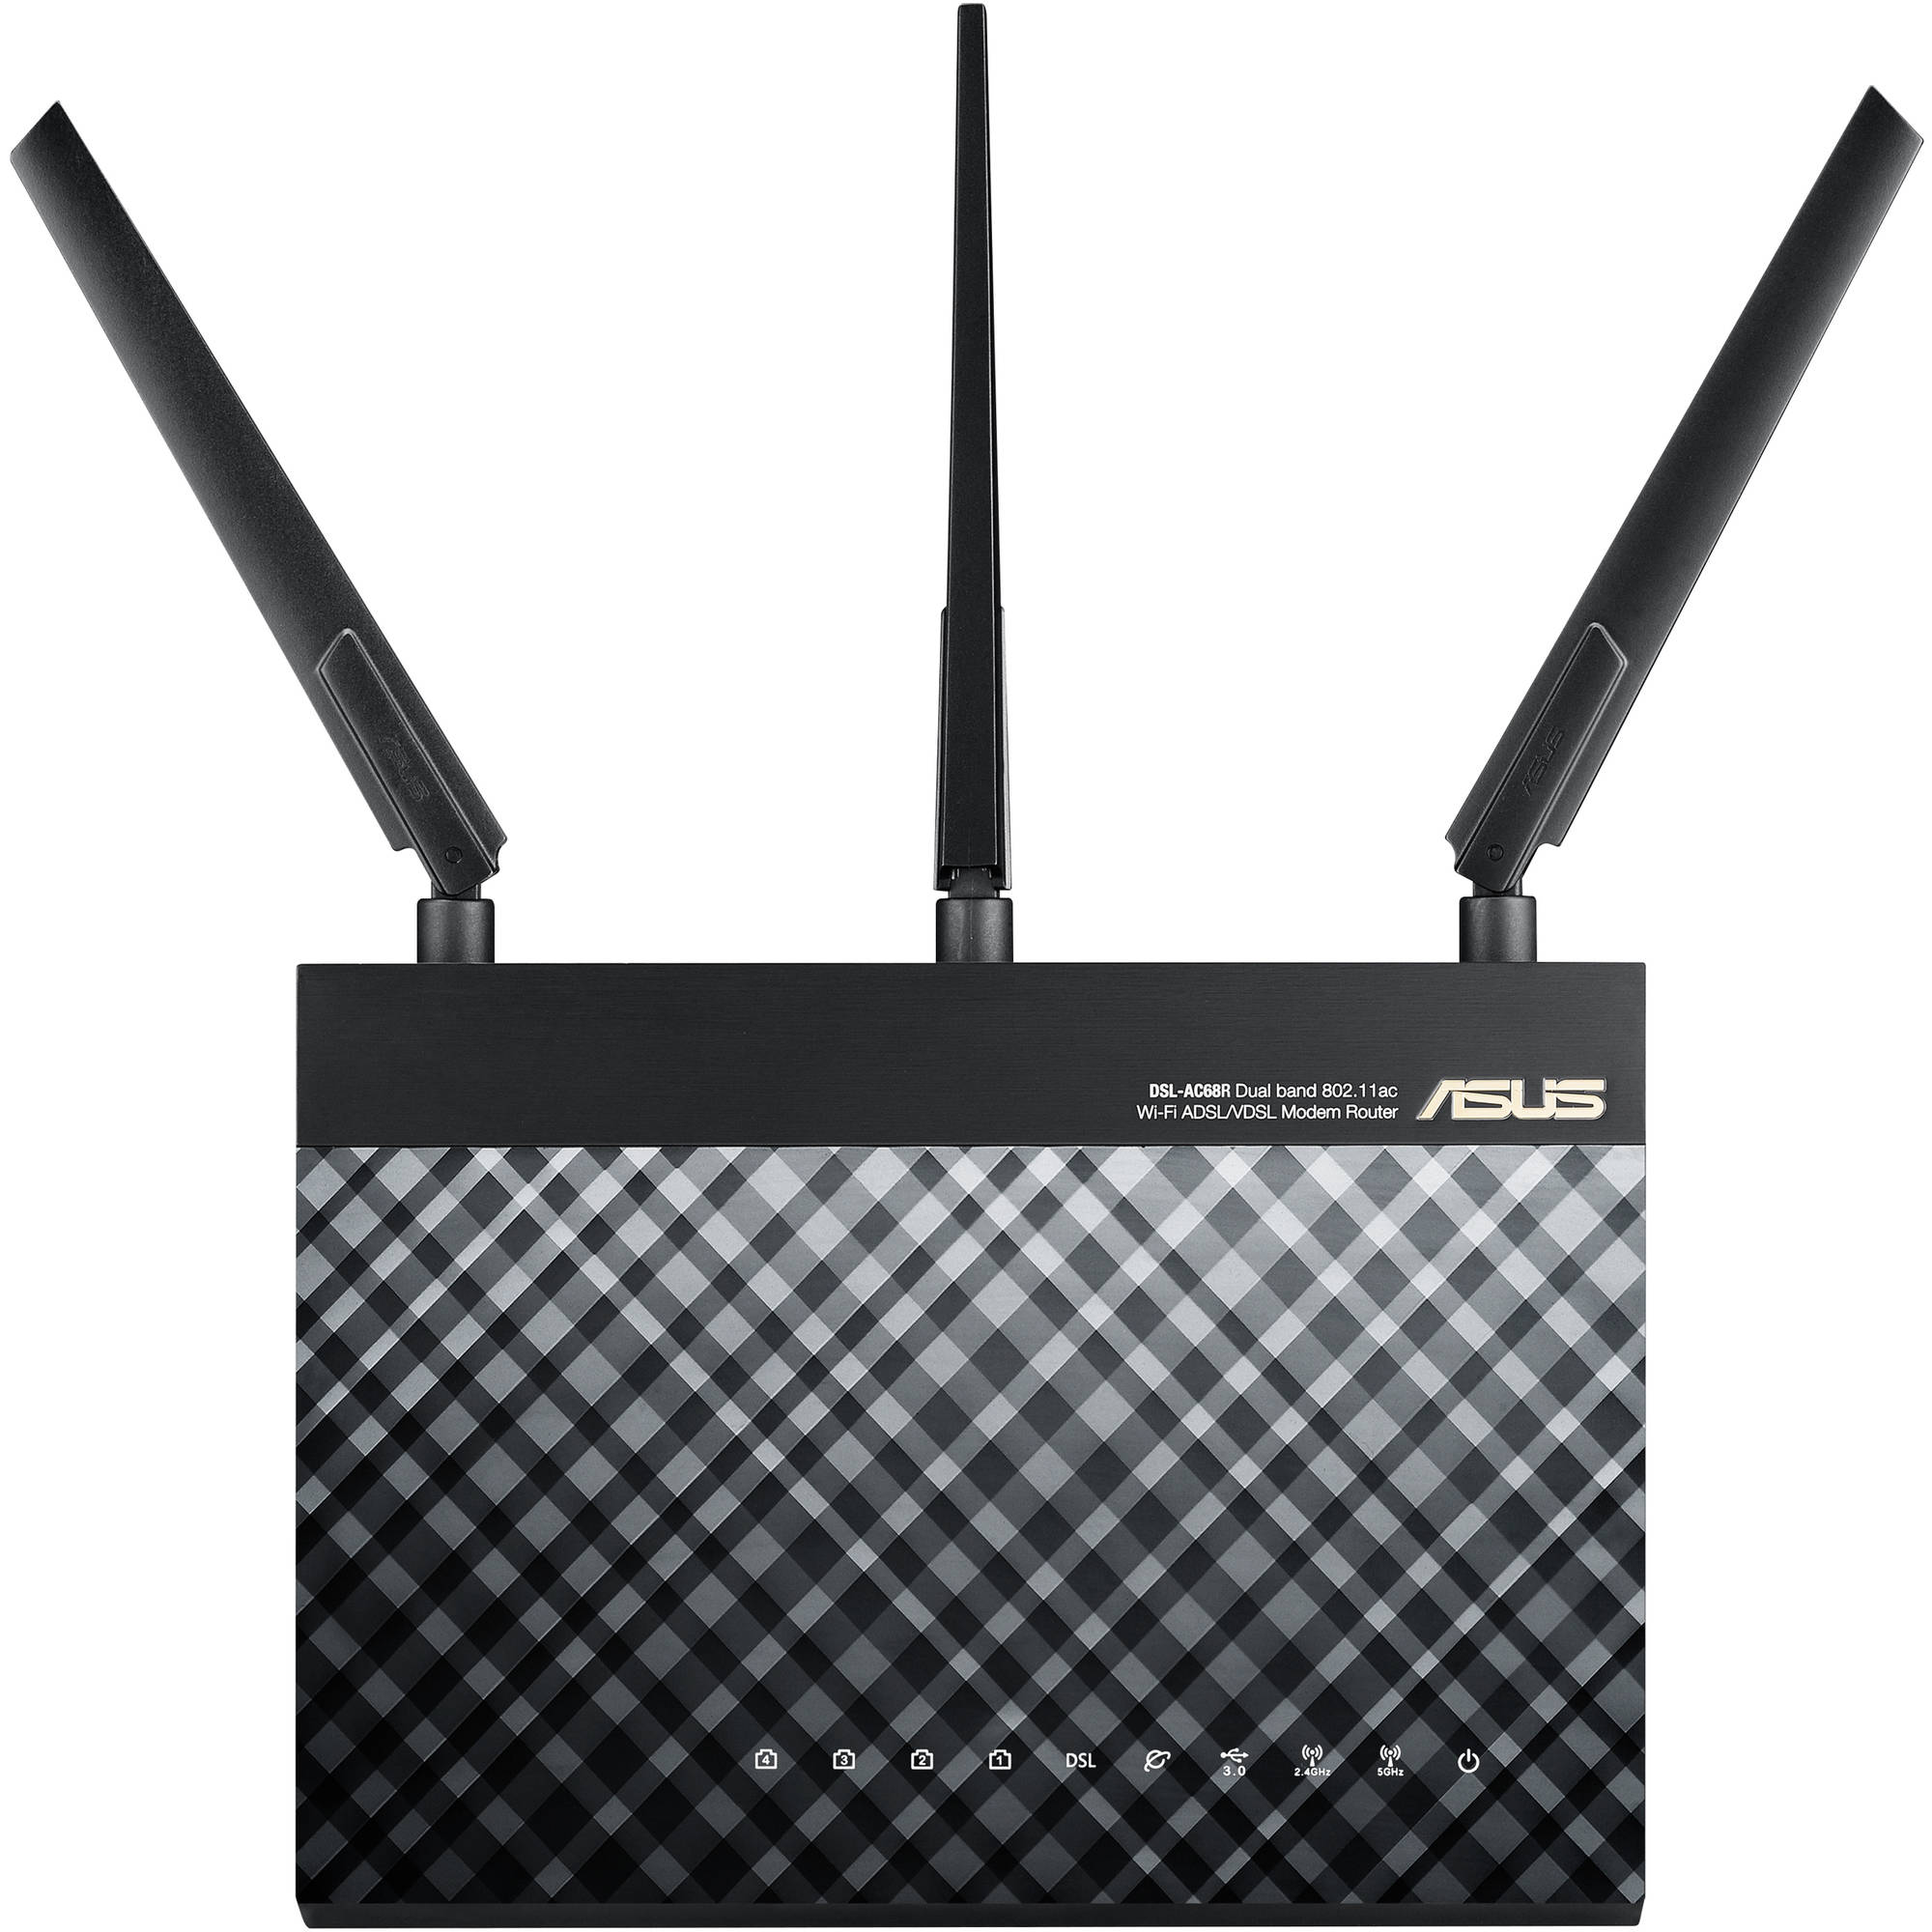 ASUS RT-AC1900 Router by ASUS